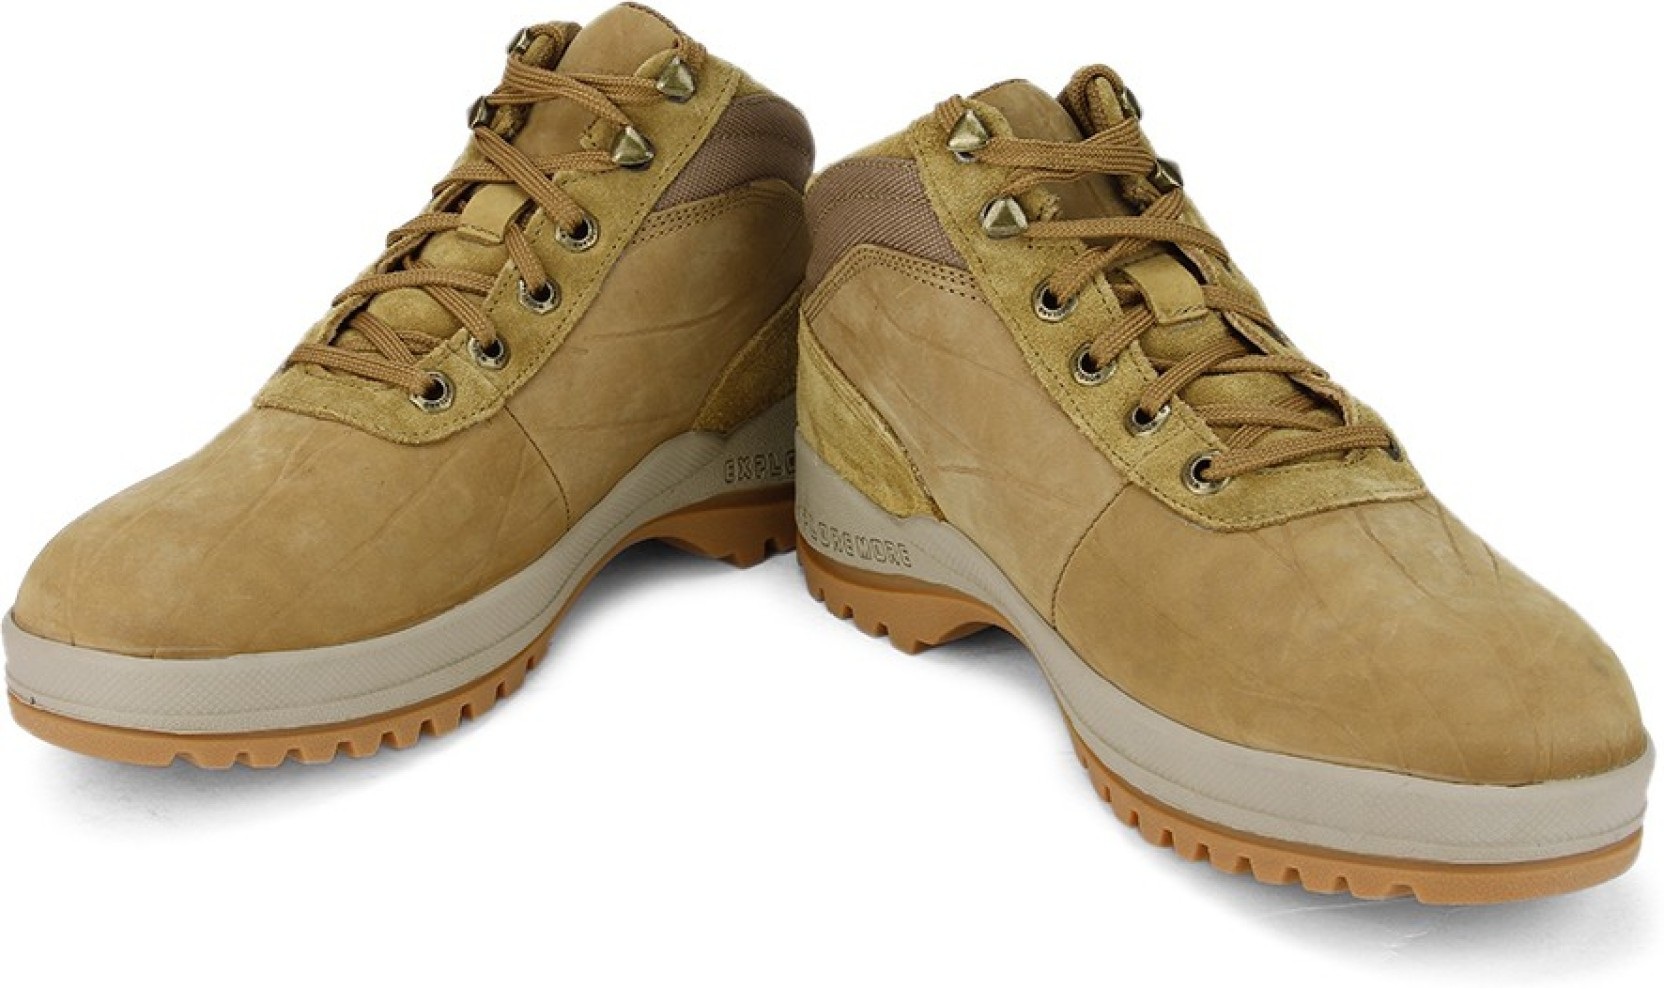 Woodland Men Boots - Buy CAMEL Color Woodland Men Boots ...